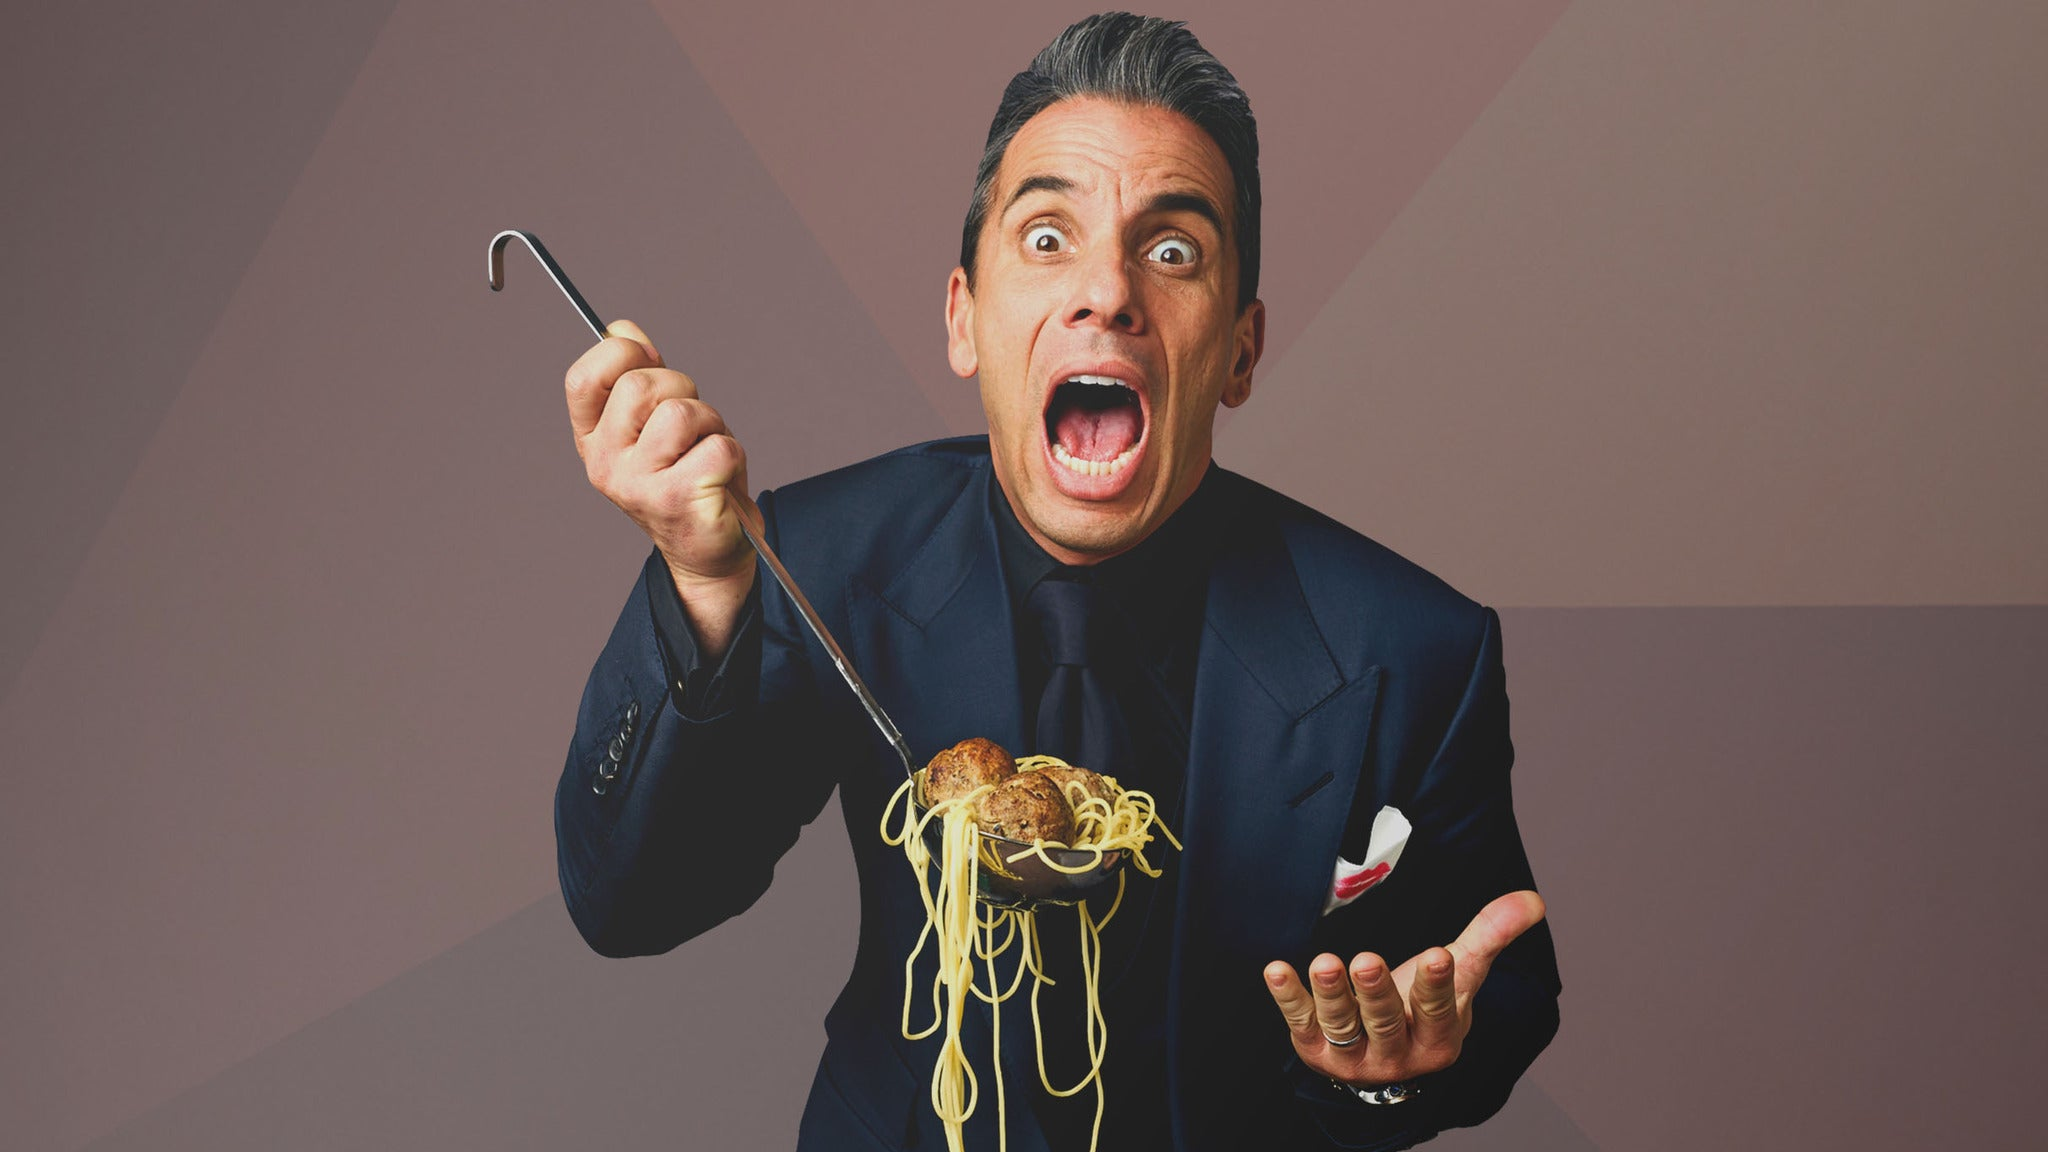 Sebastian Maniscalco: Stay Hungry Tour at Mohegan Sun Arena - Uncasville, CT 06382